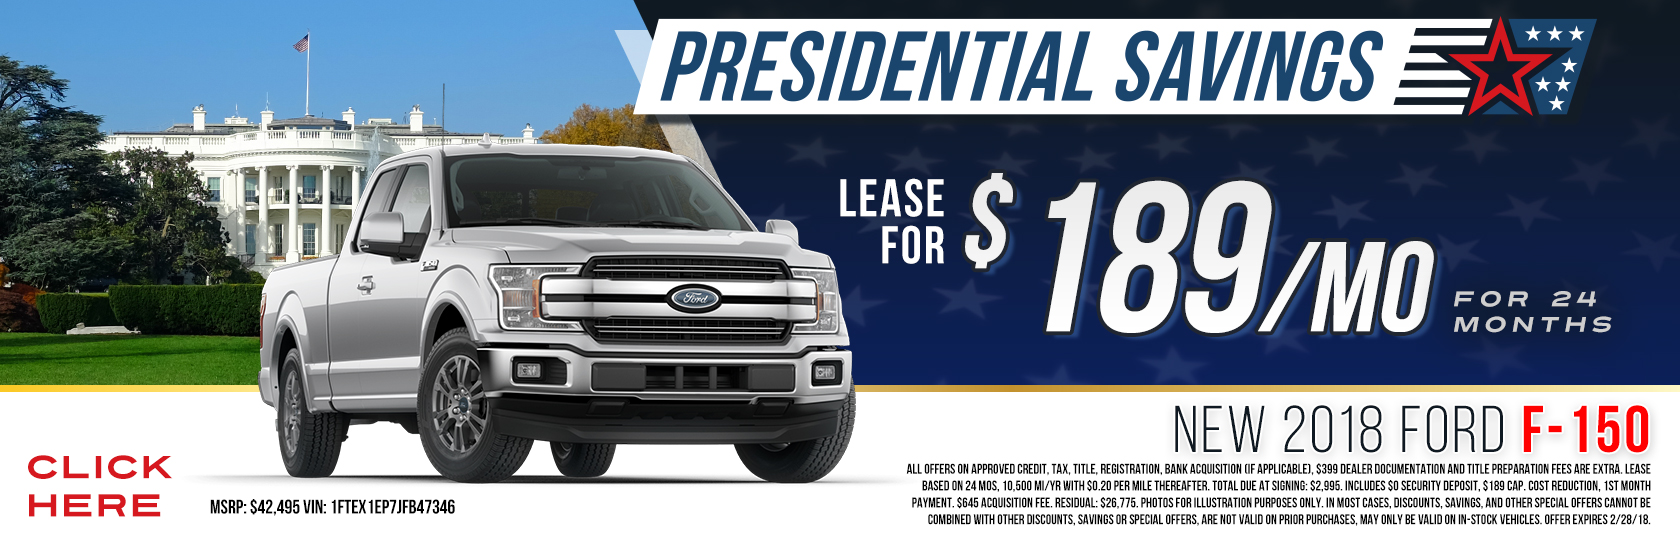 Ford Lease Deals >> Lease For 189 Per Month For 24 Months